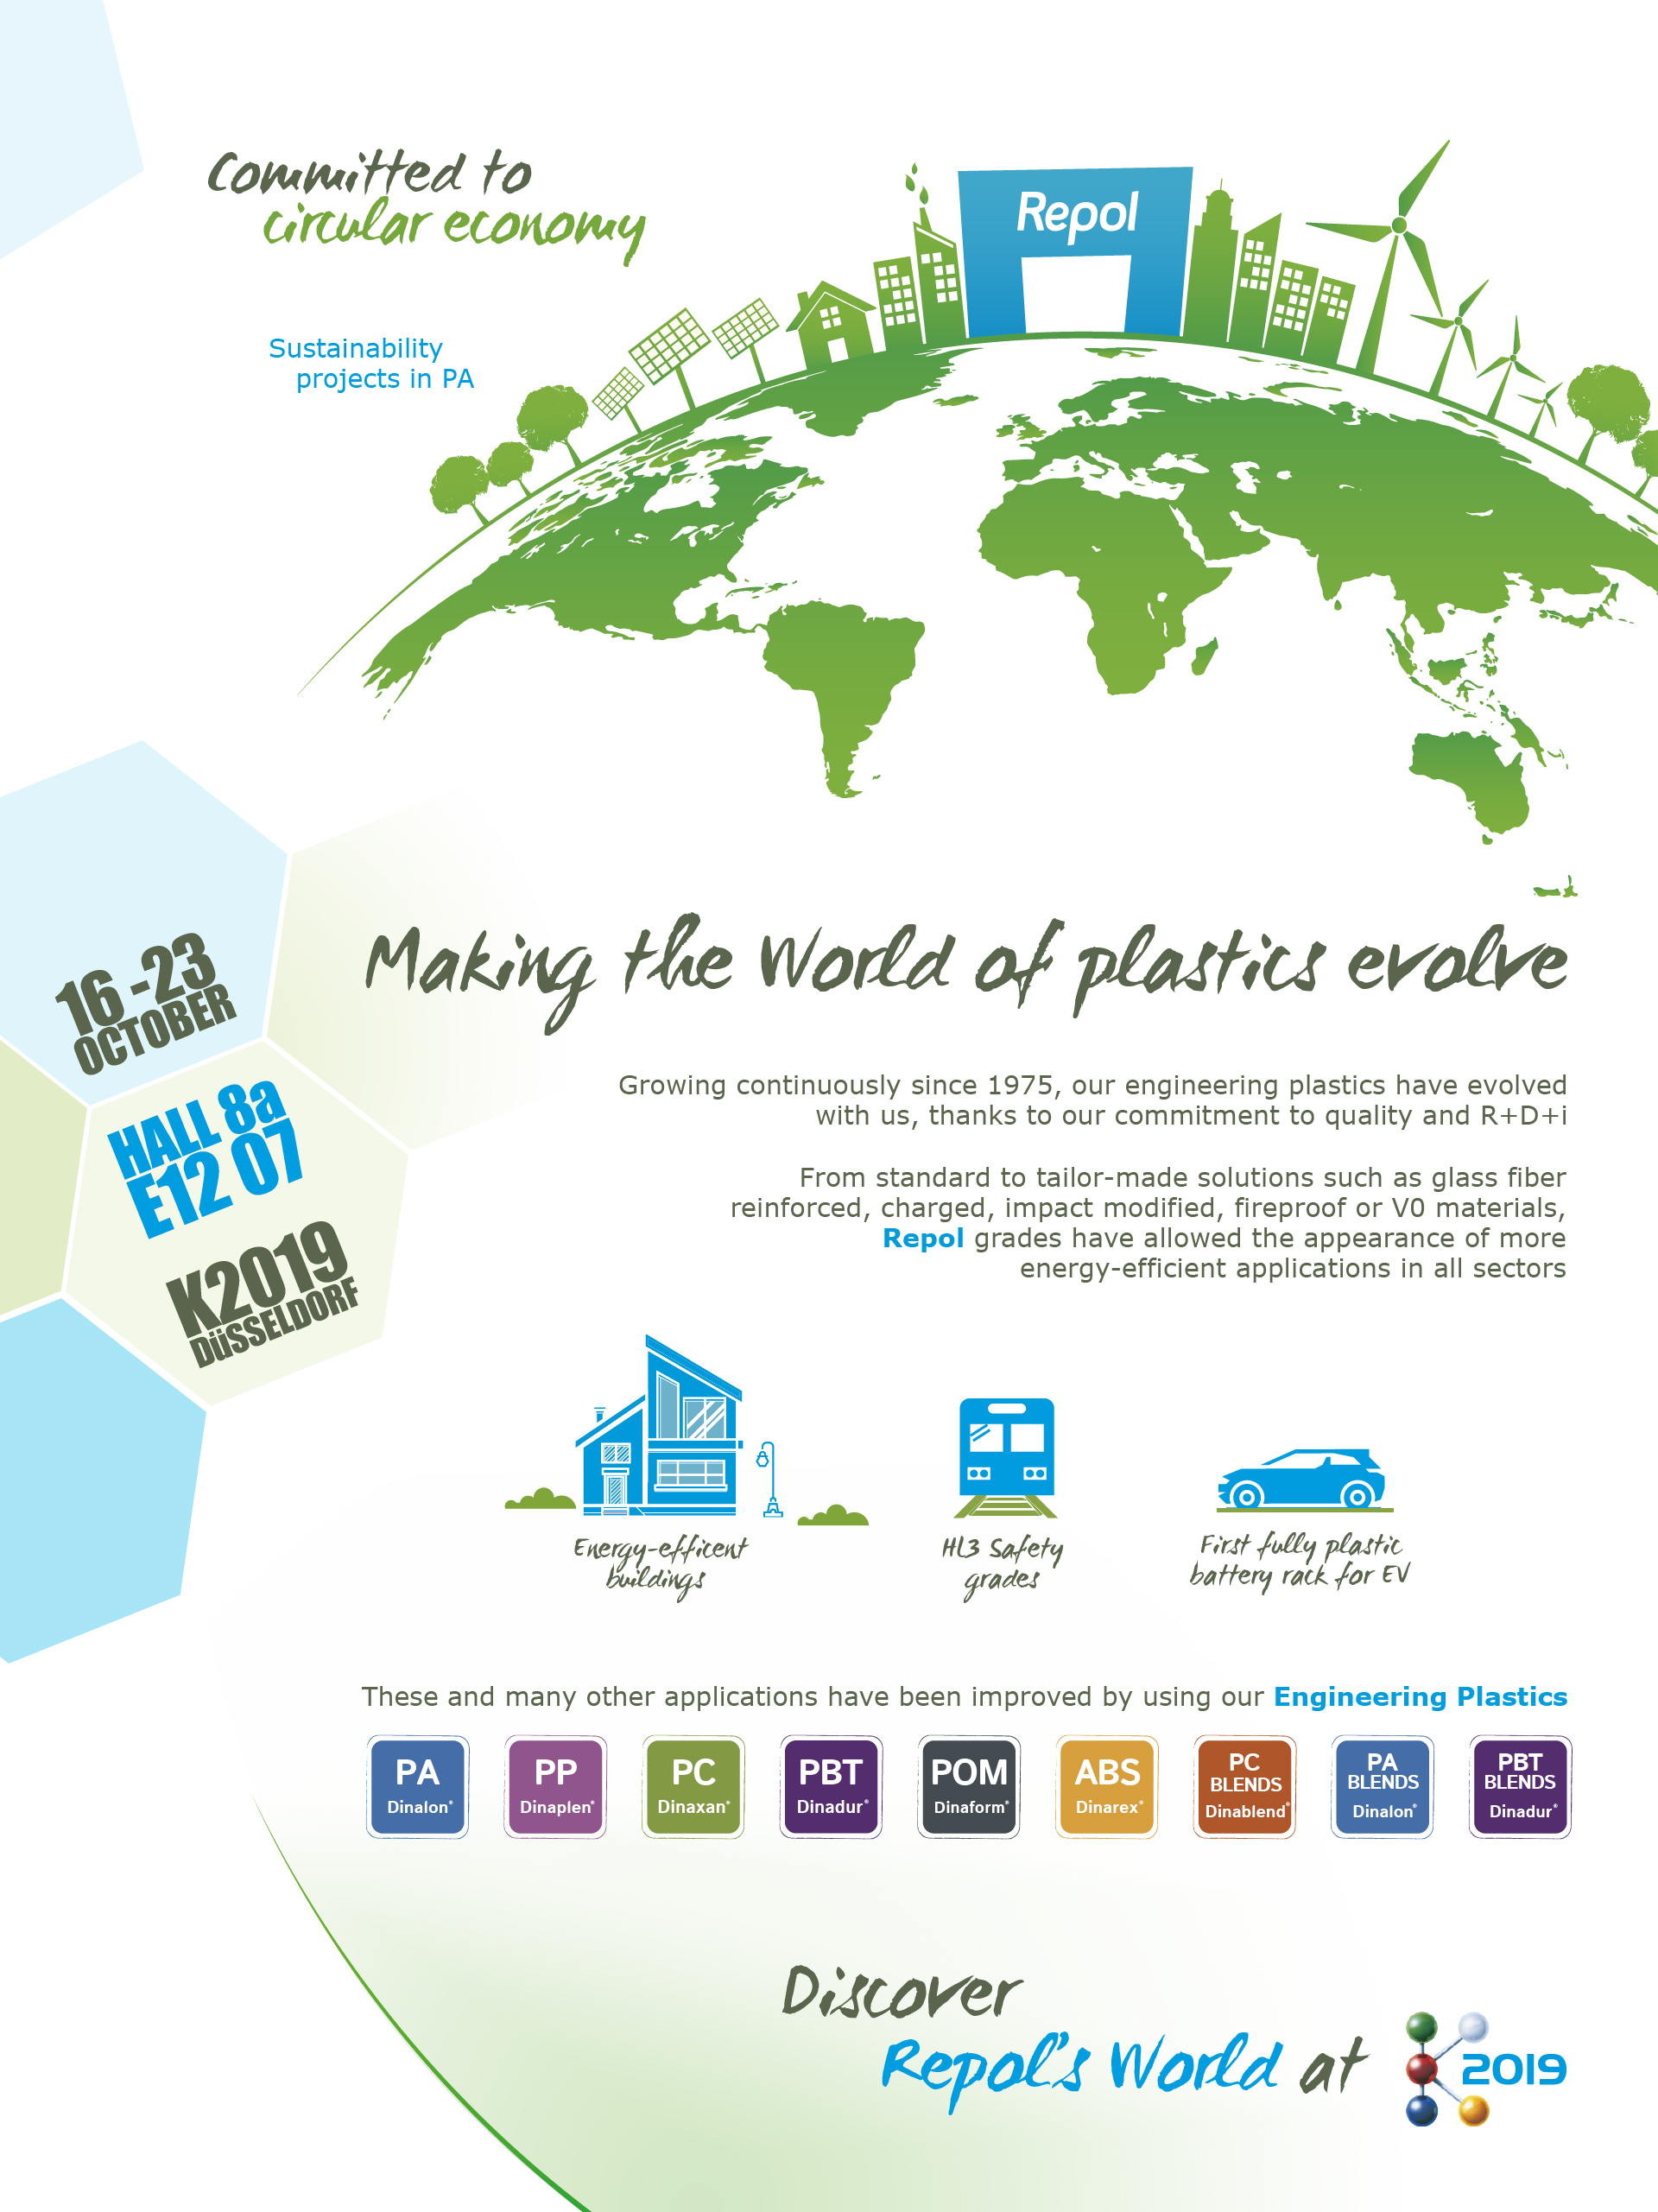 Making the World of plastics evolve - Repol - Committed to circular economy